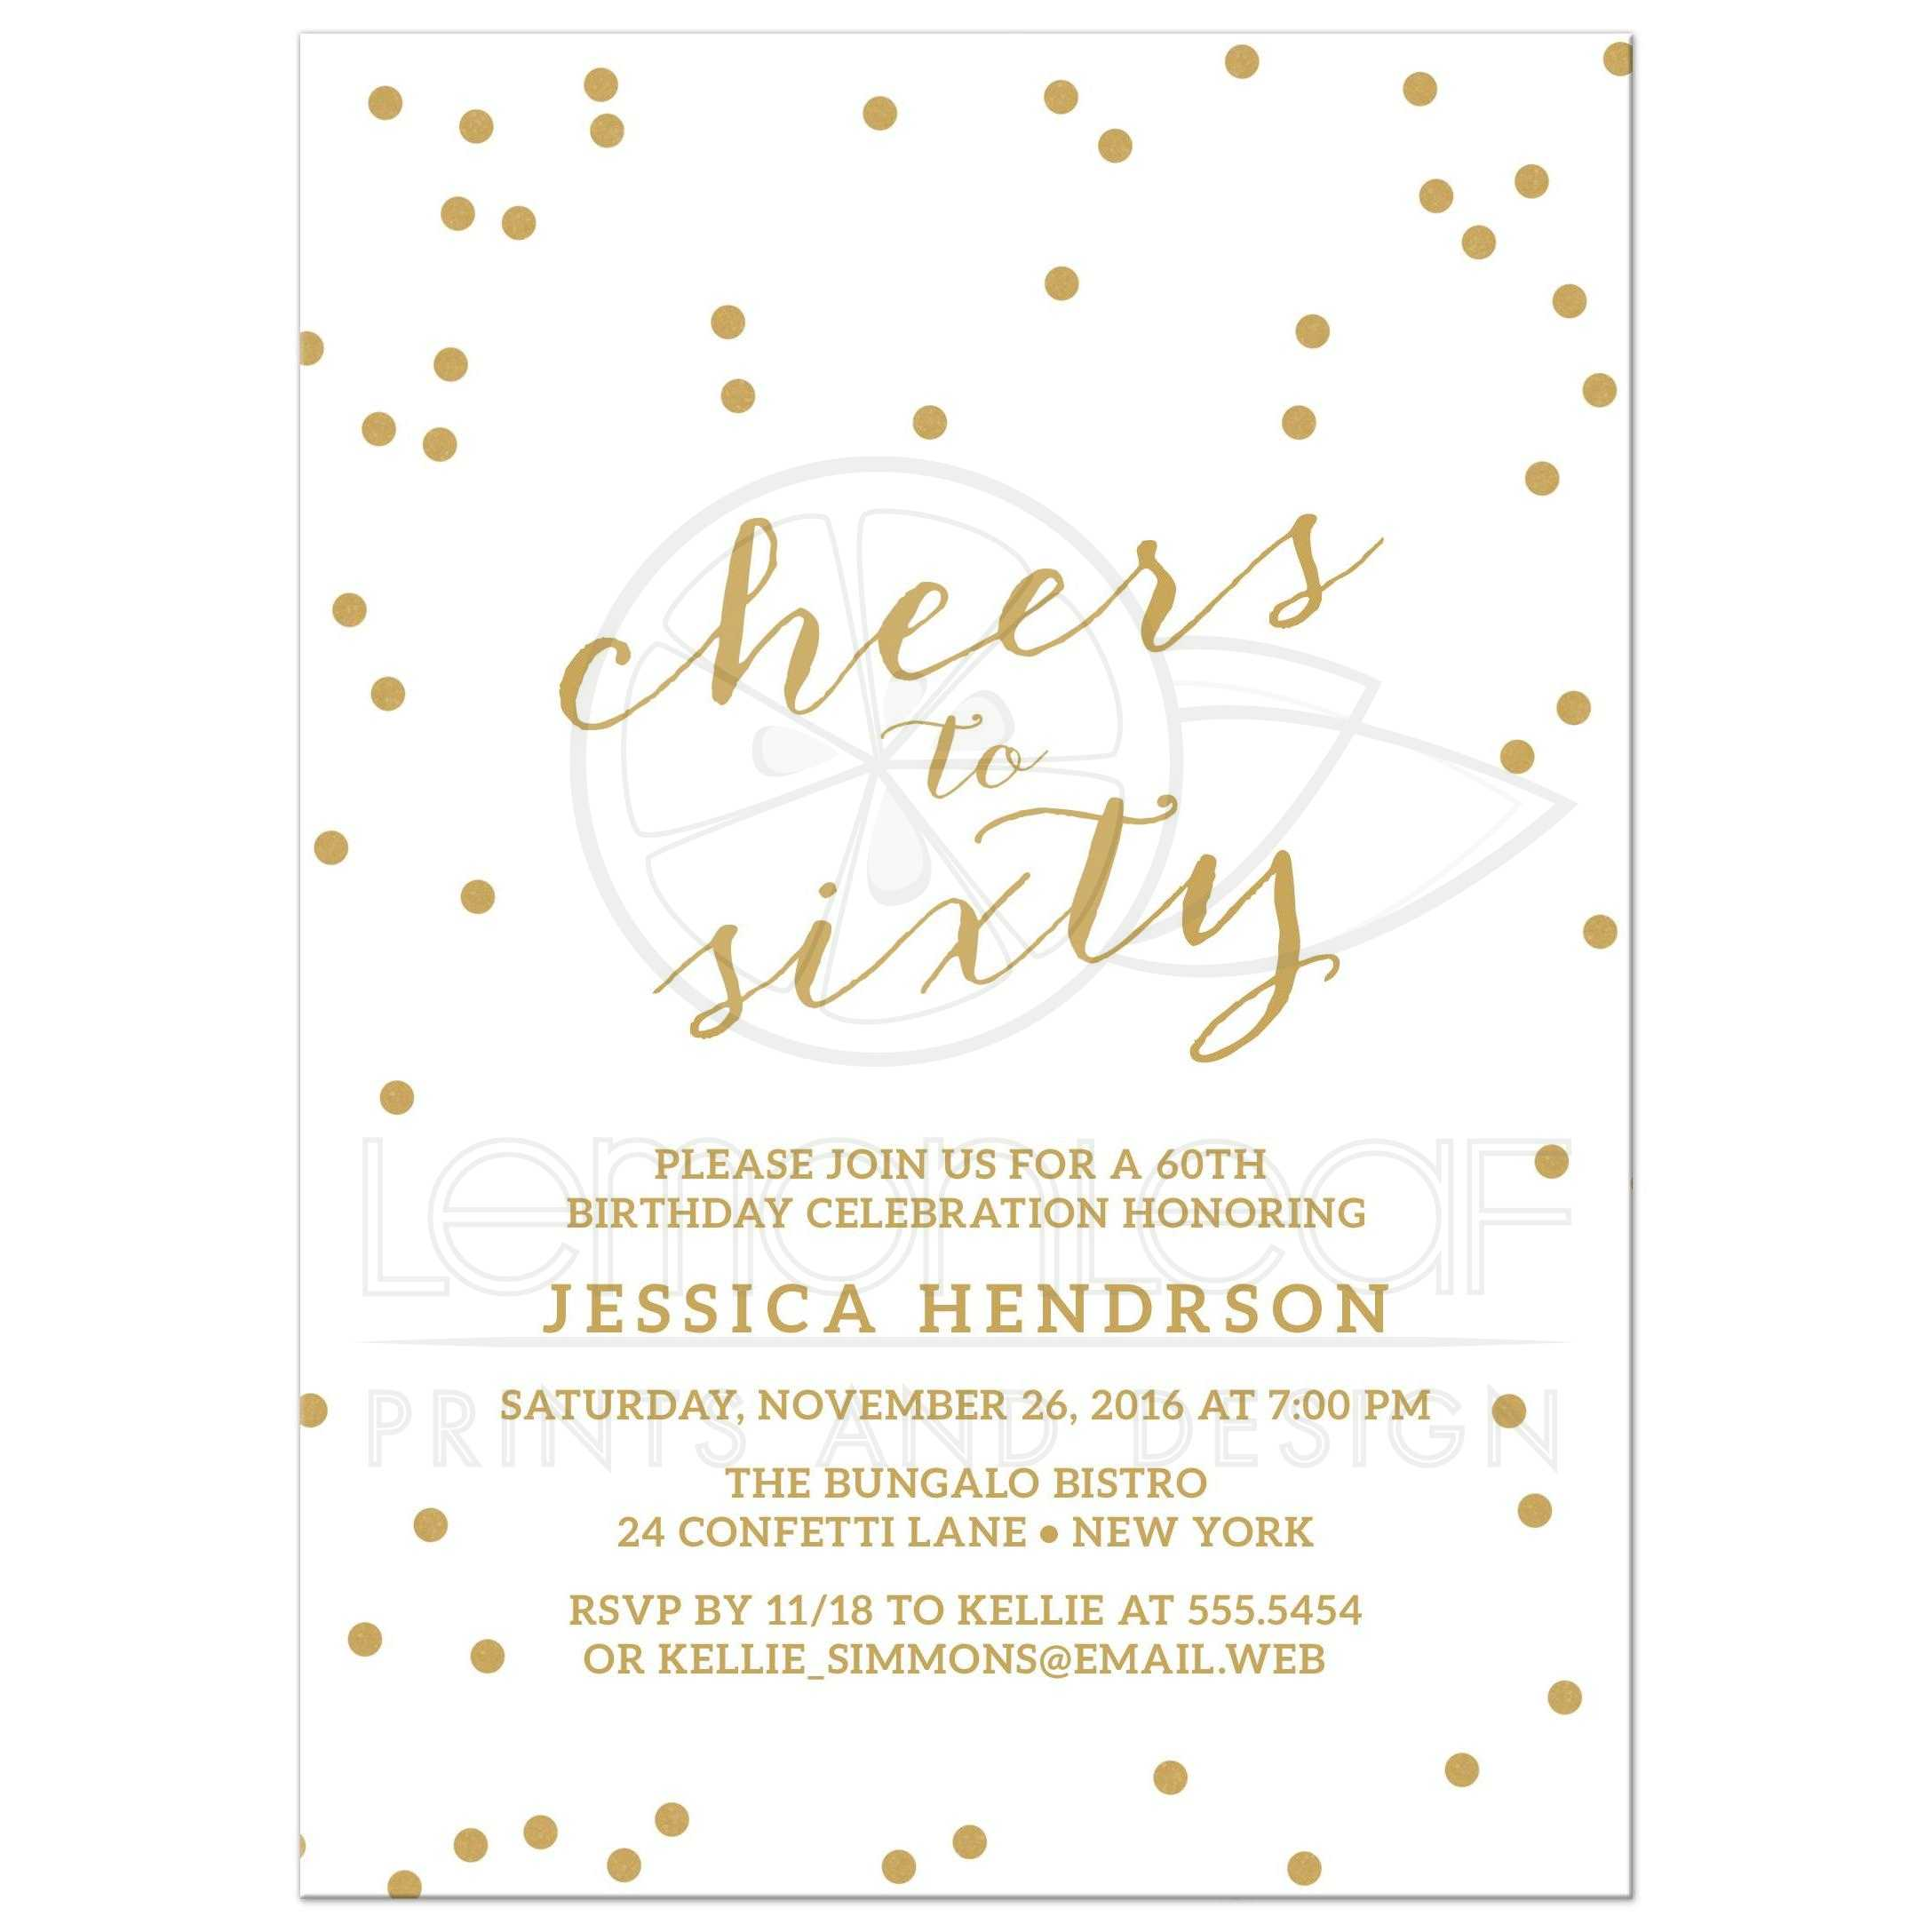 60th Birthday Party Invitations - Gold Confetti Cheers to Sixtieth